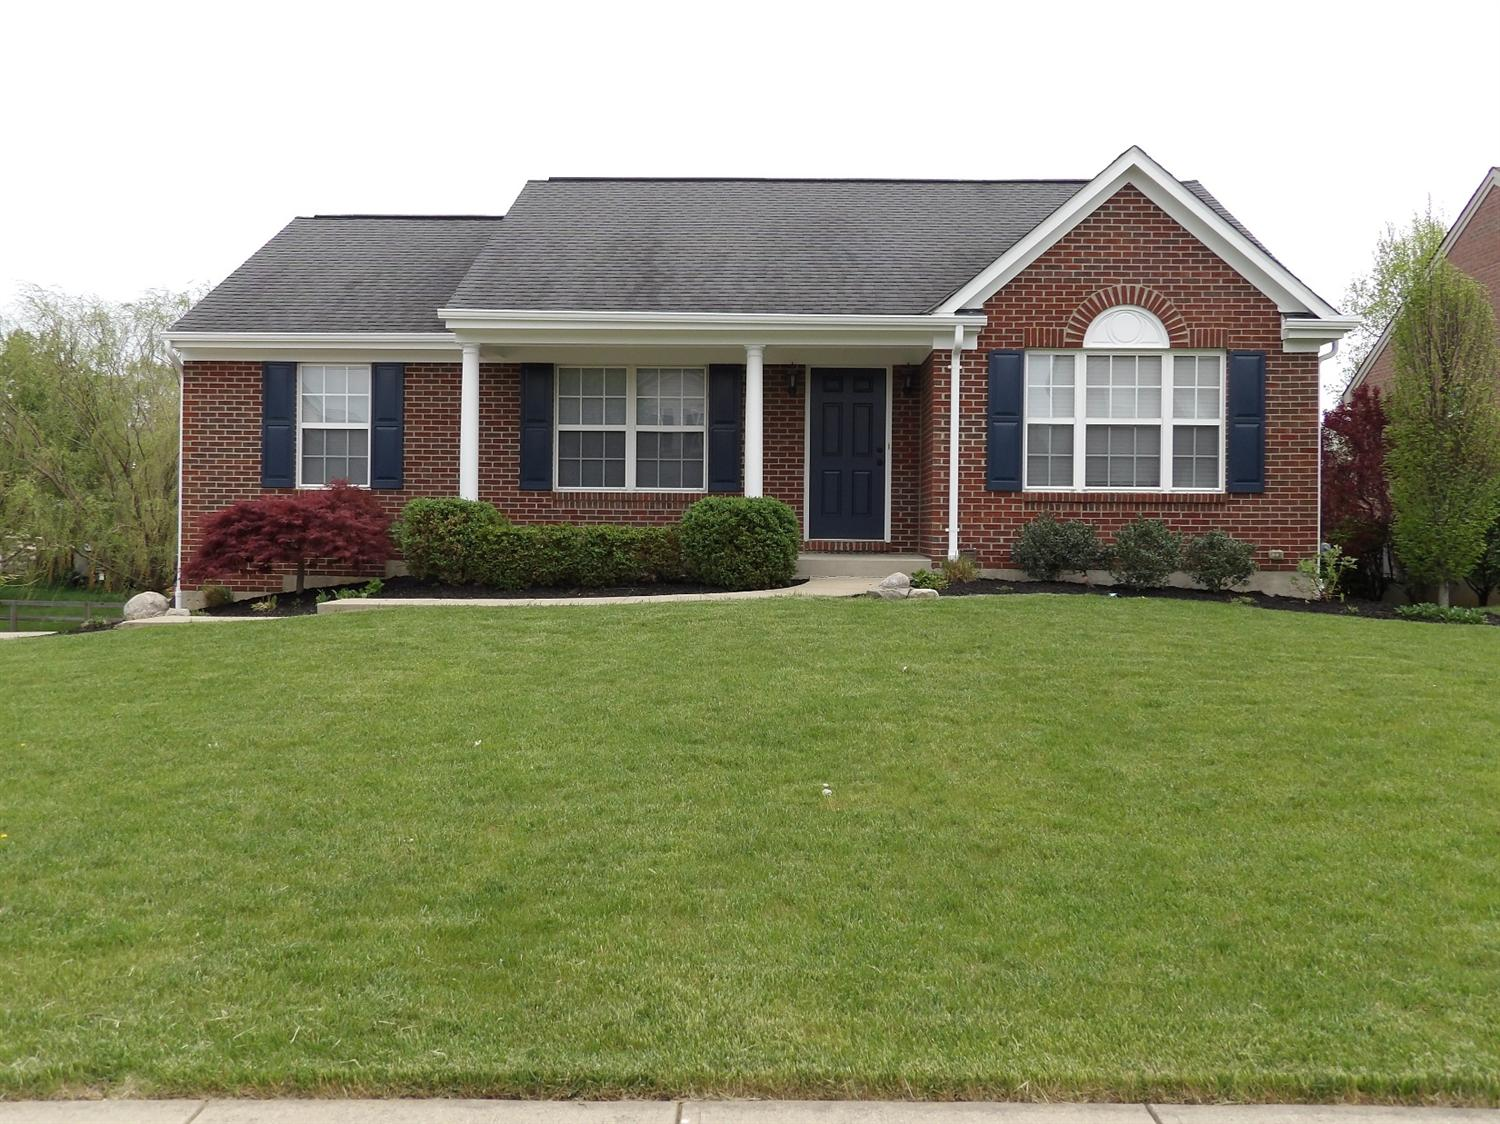 Photo 1 for 6492 Edgecliff Ter Burlington, KY 41005